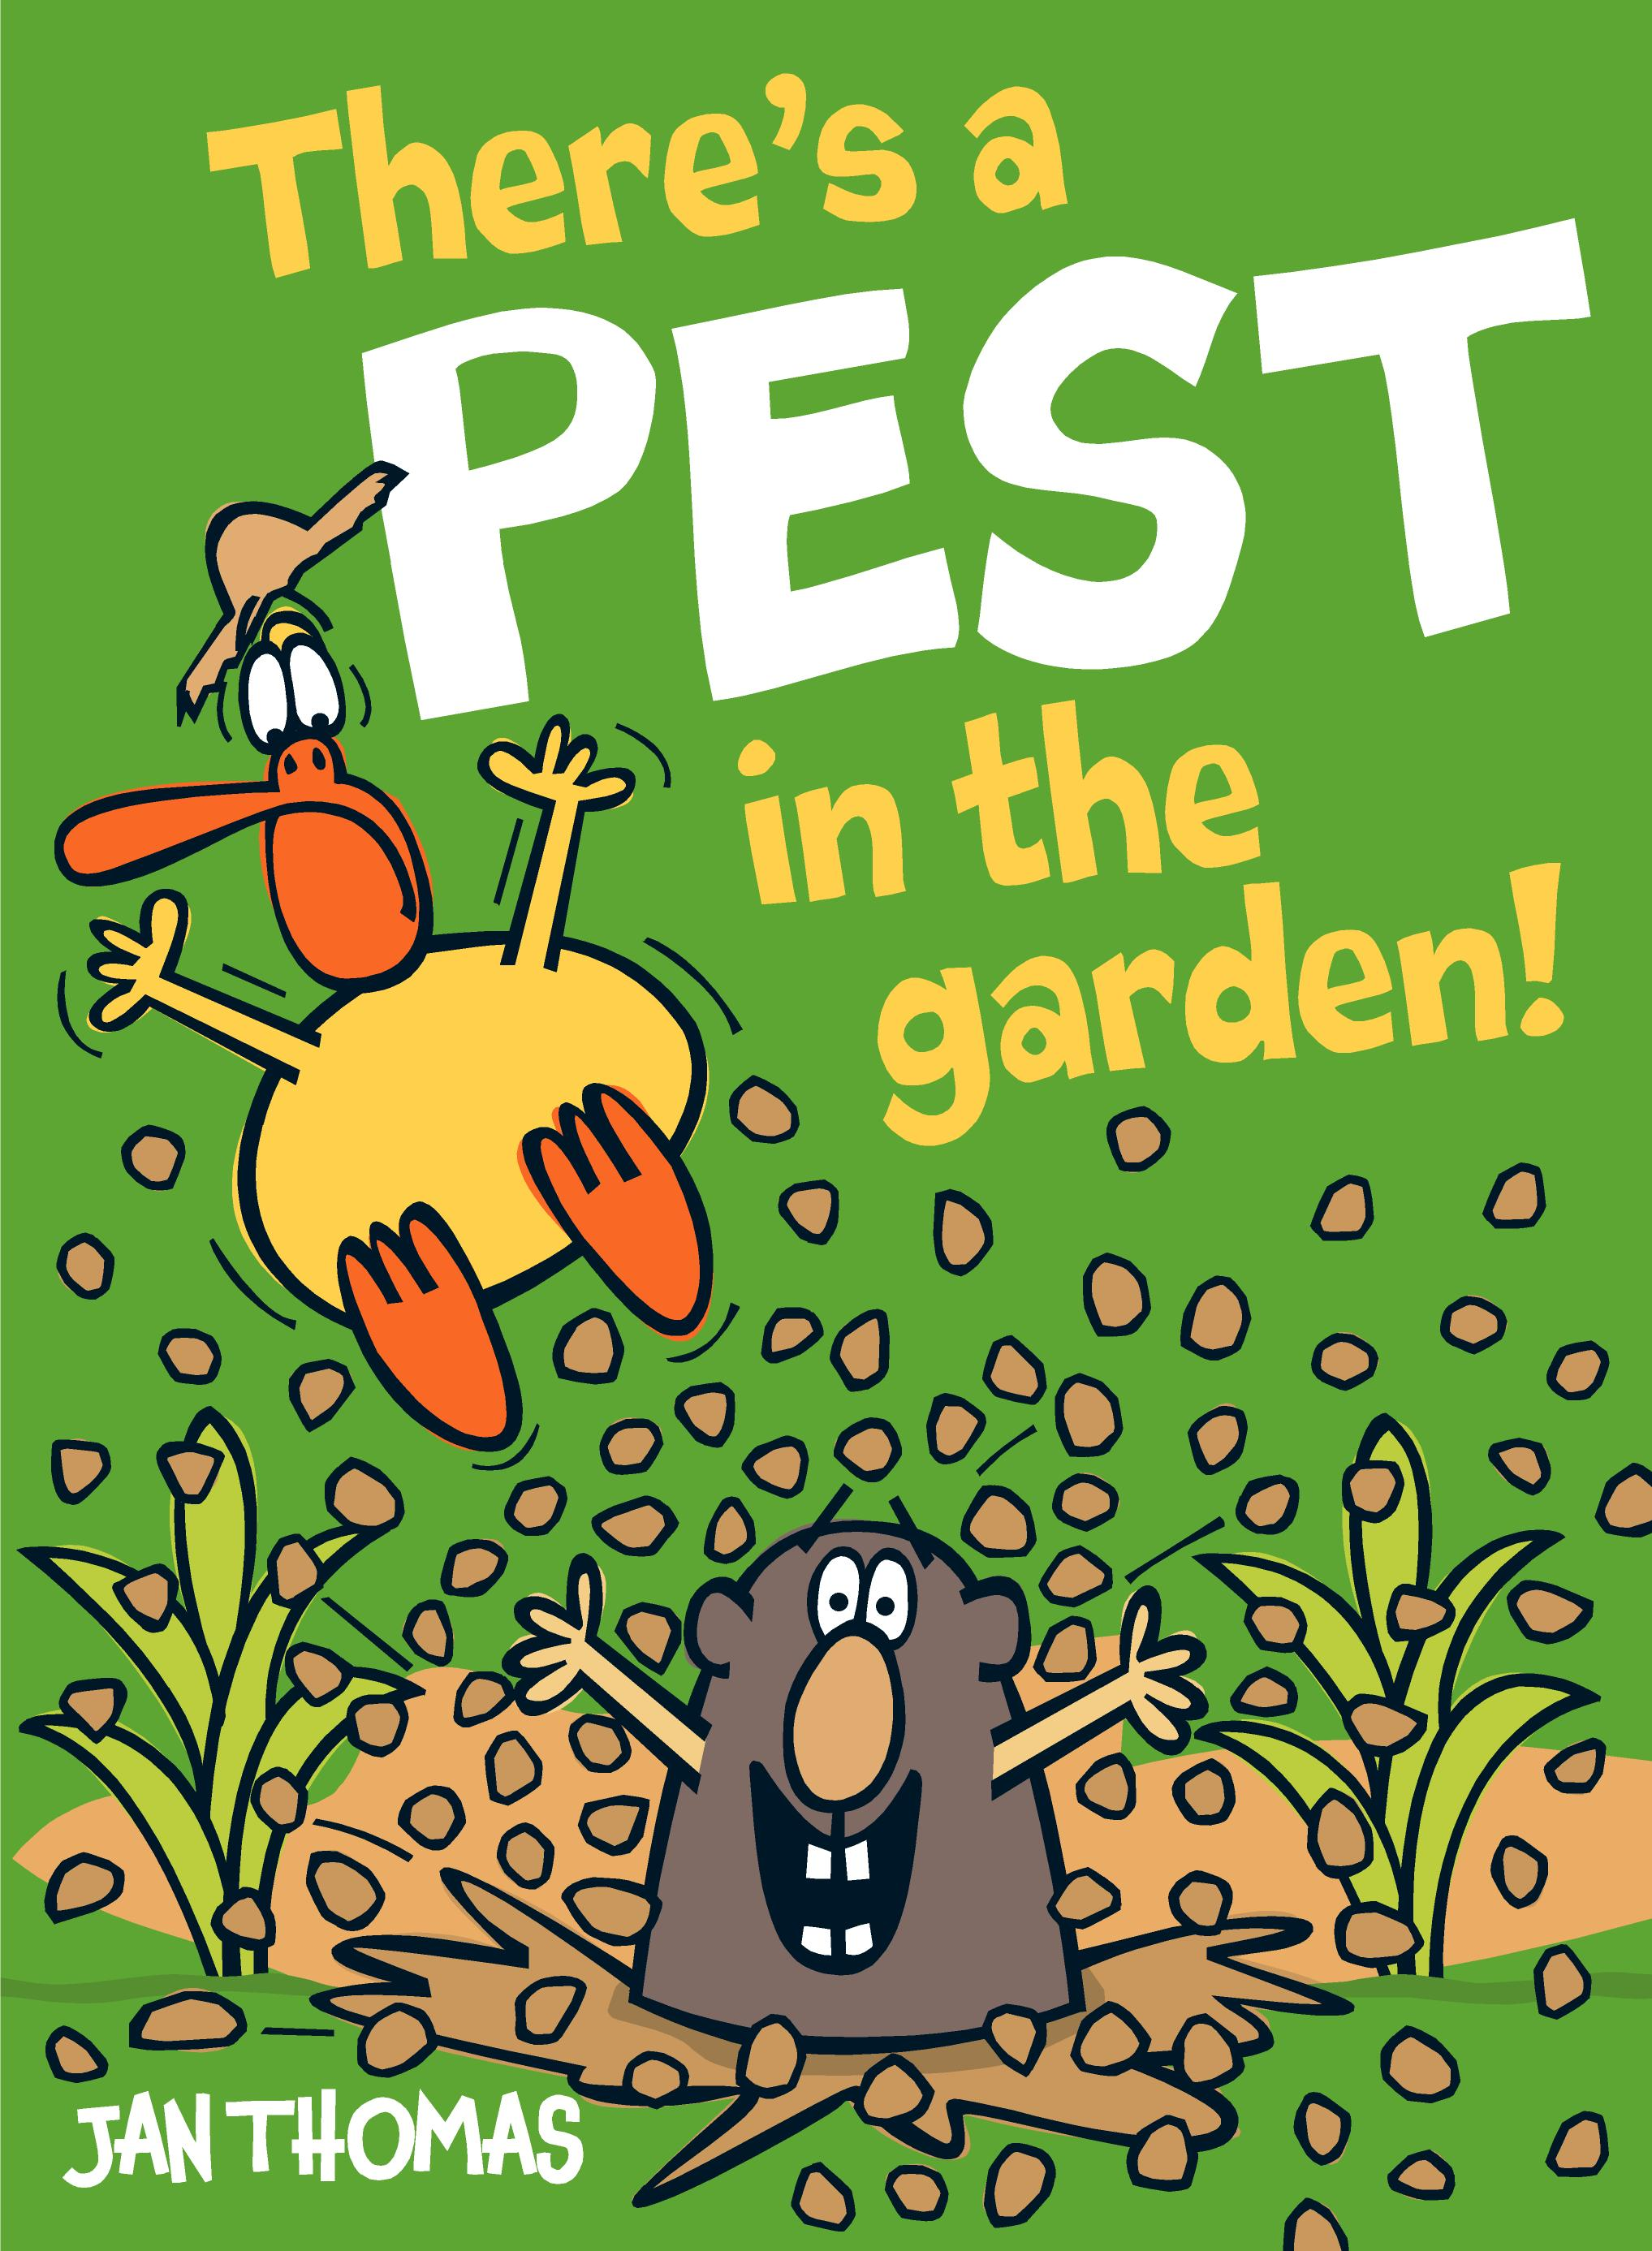 There is a pest in the garden!